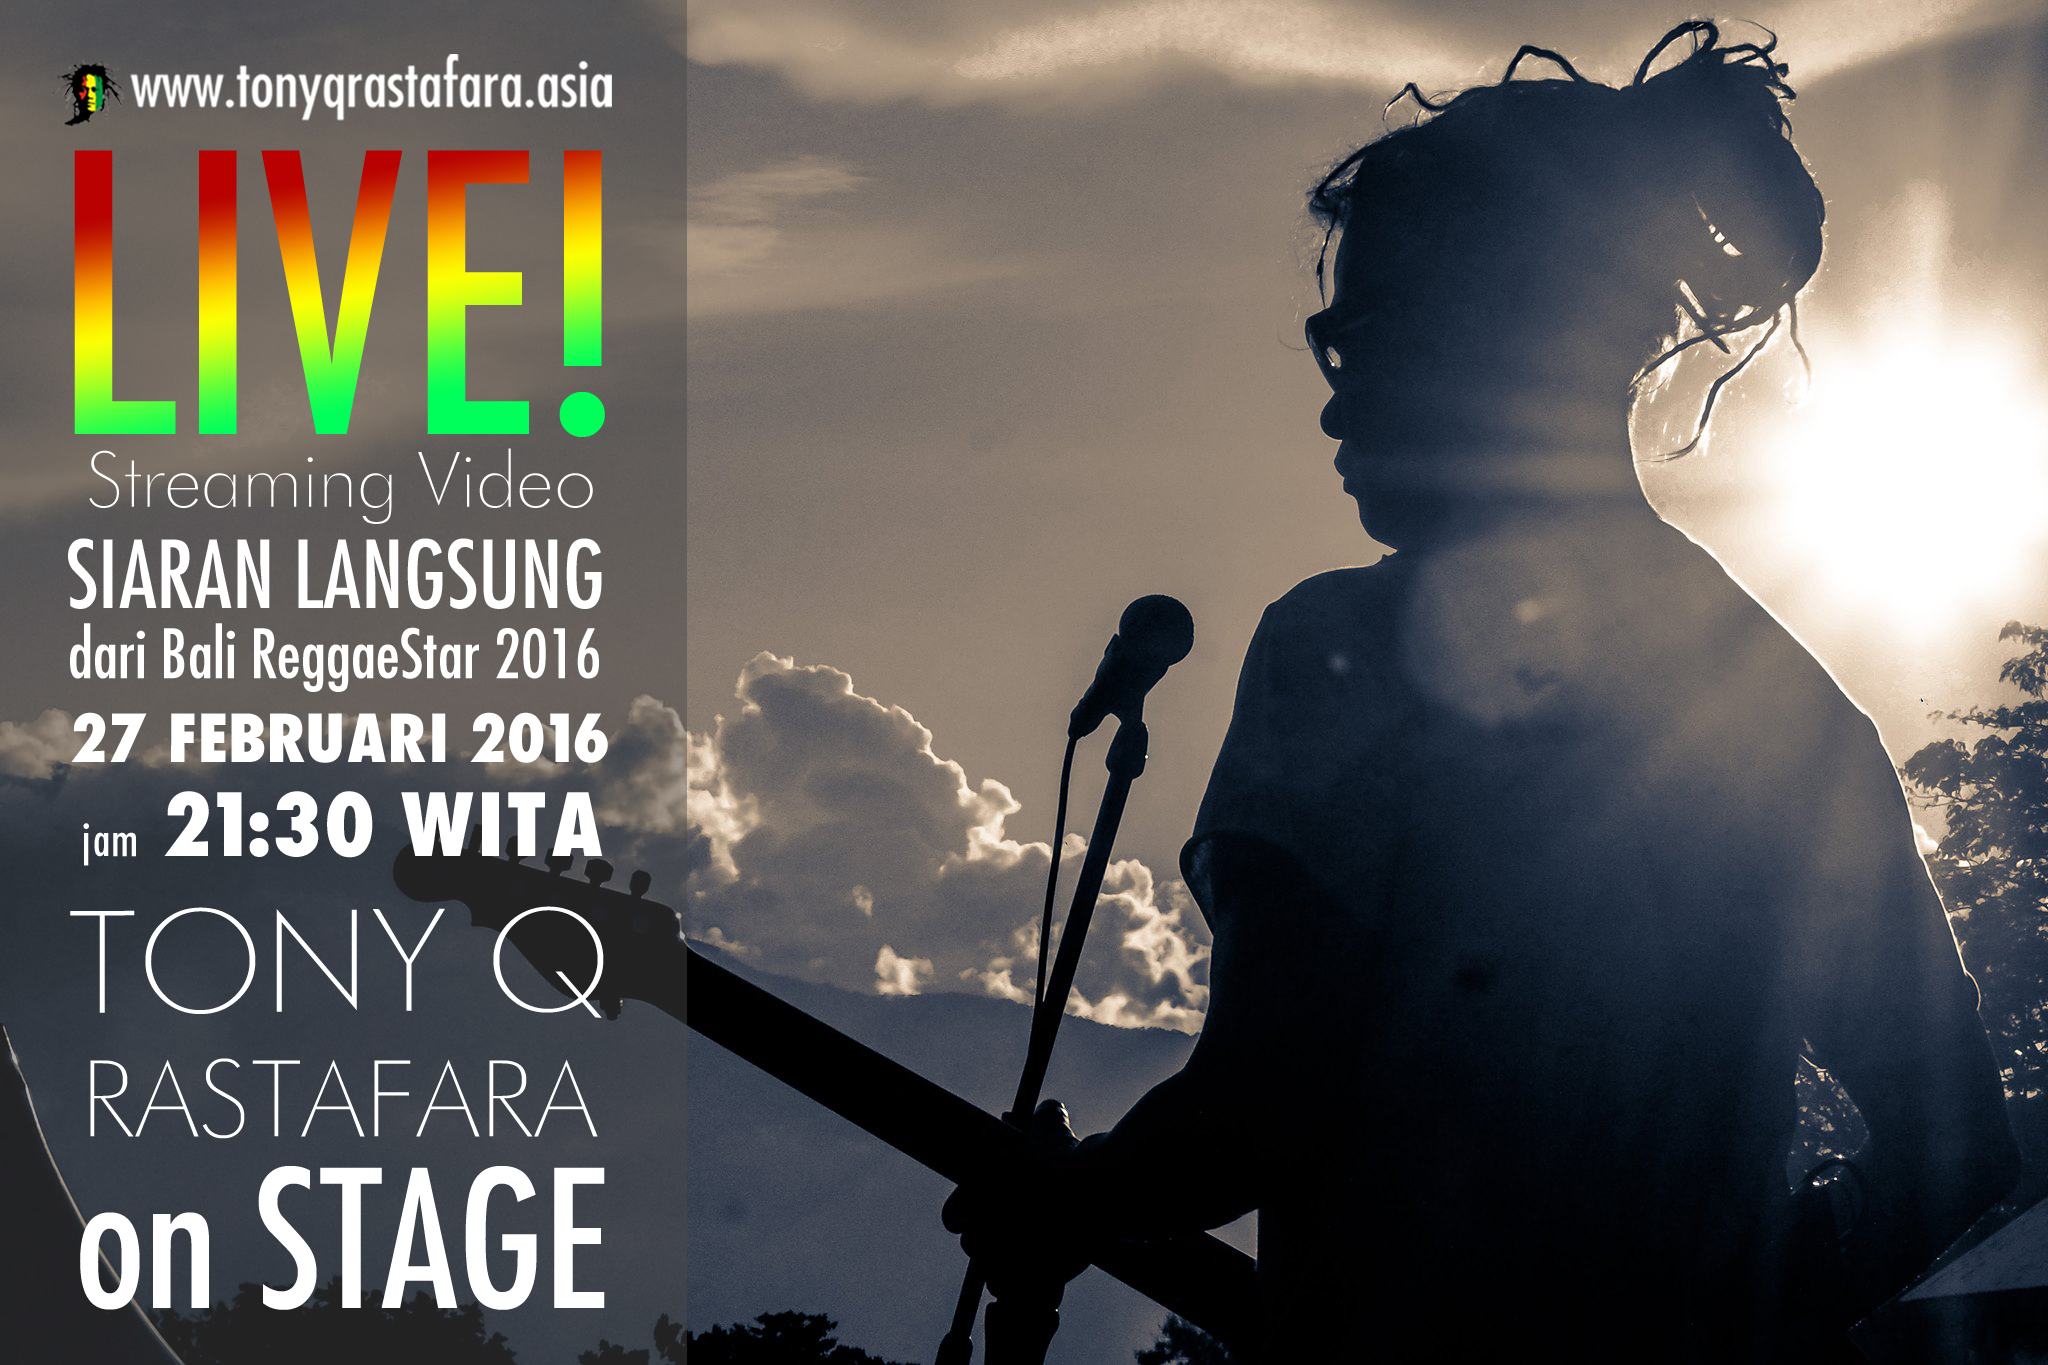 Tony Q Rastafara Live Streaming Event